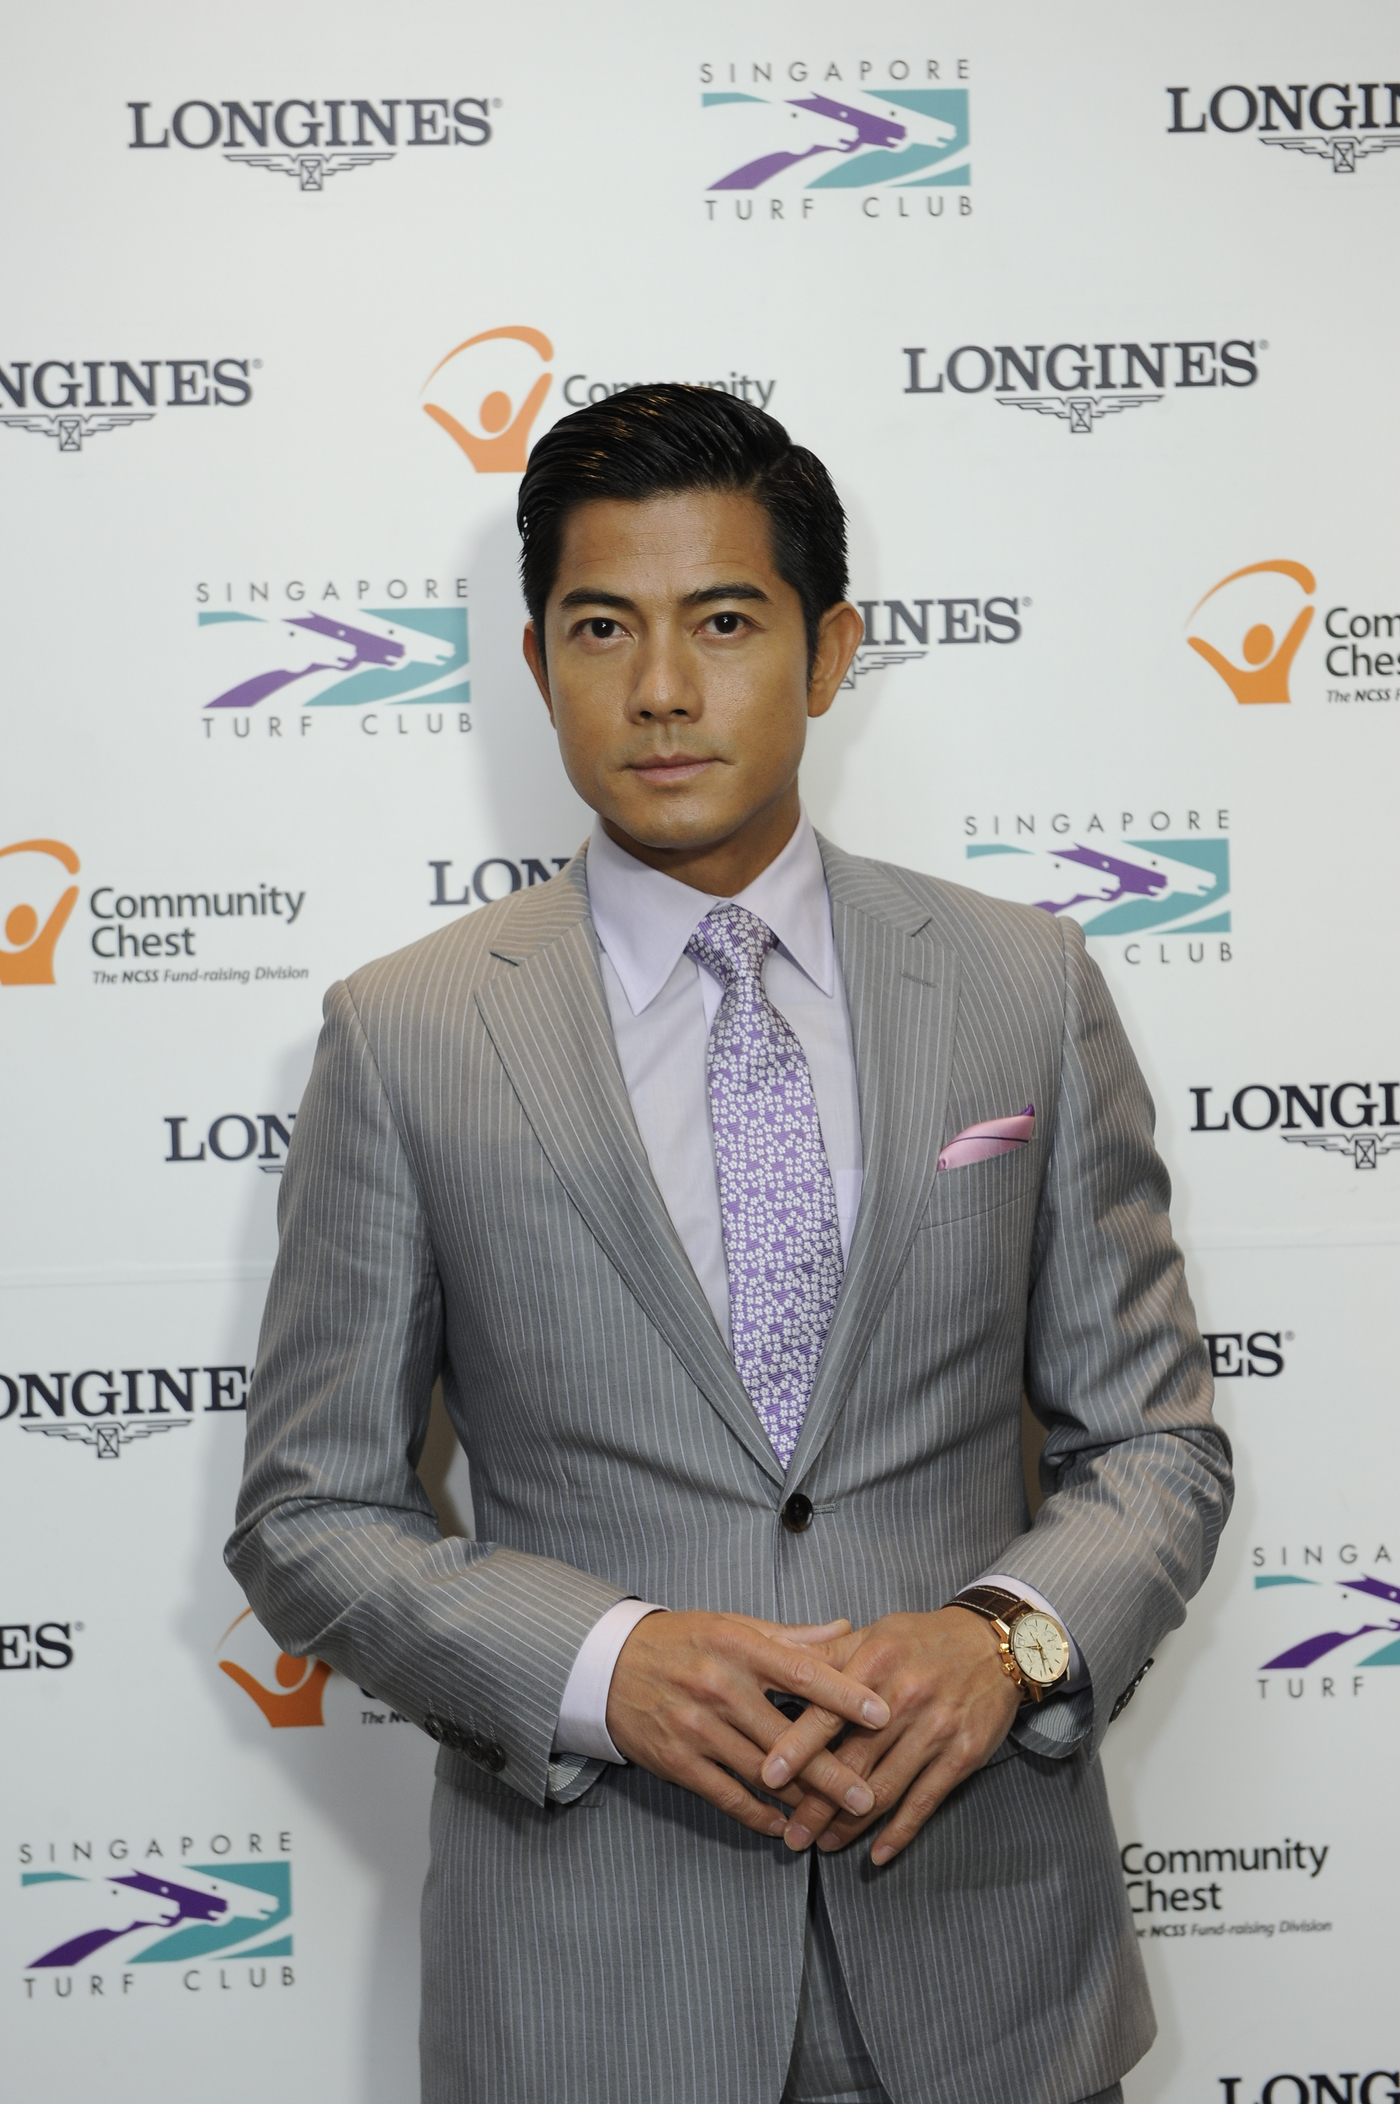 Longines Flat Racing Event: LONGINES SINGAPORE GOLD CUP 2011 raises S$241,136 for the Chaoyang School 8